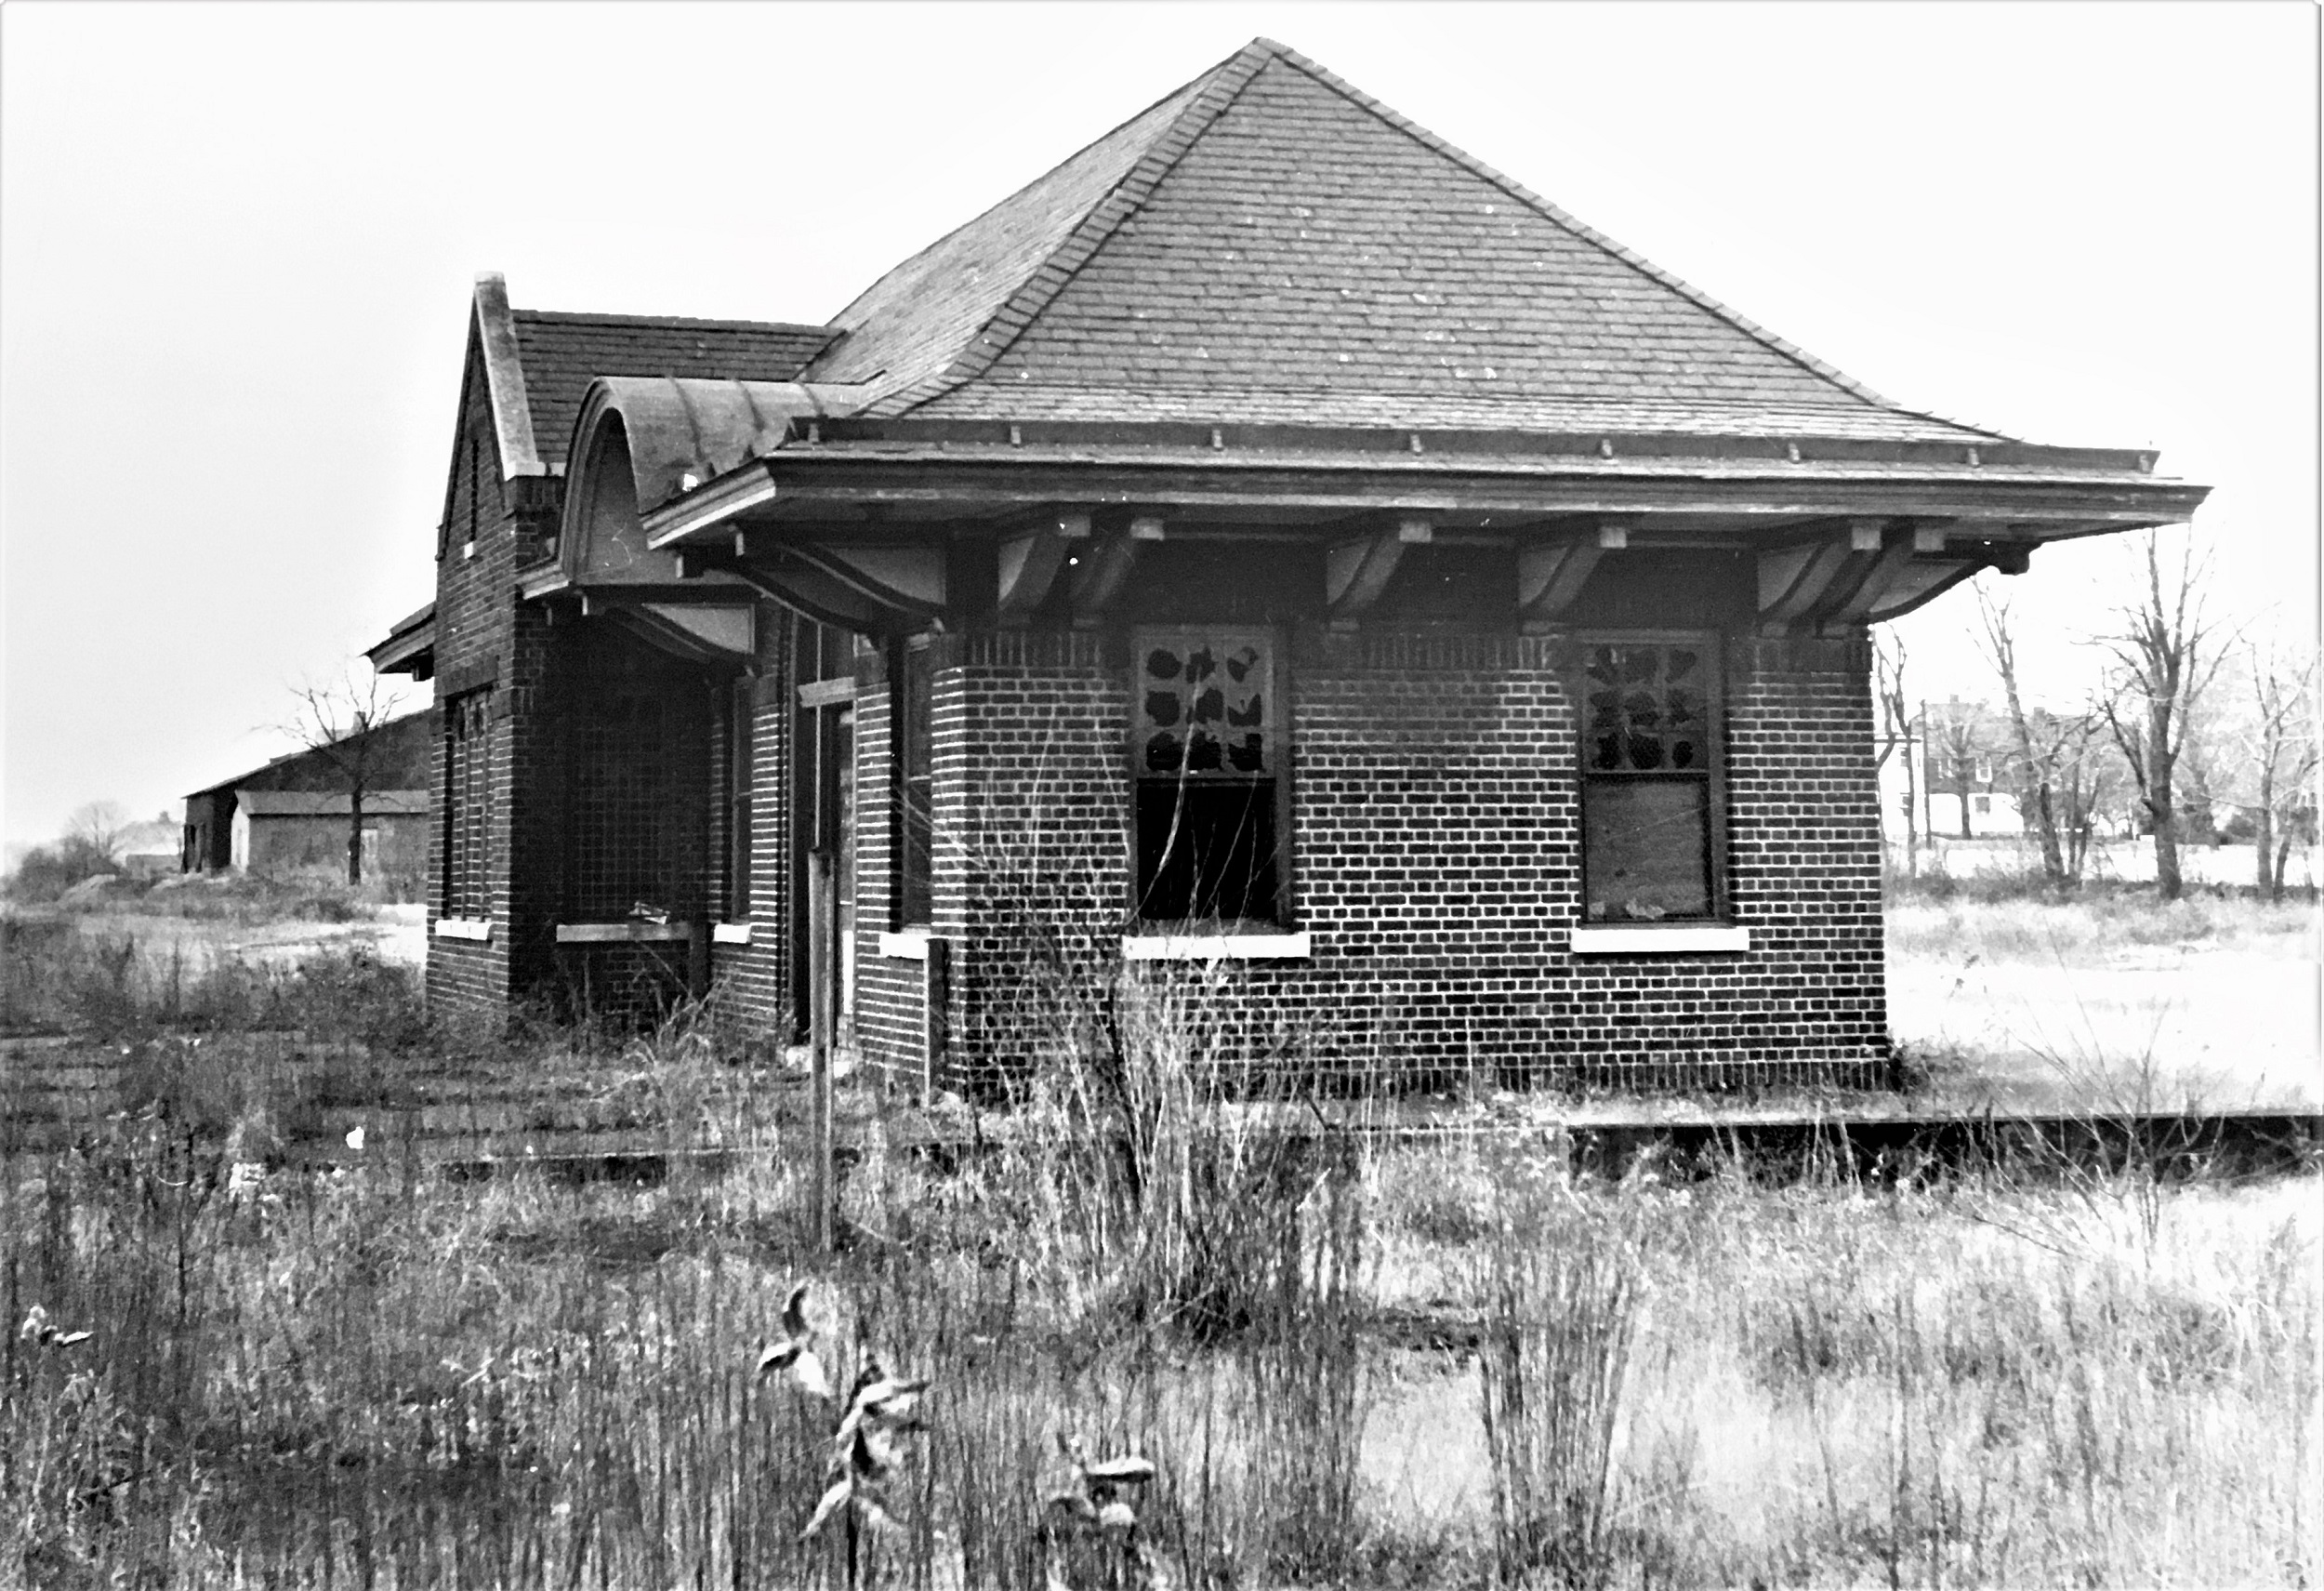 Black and white photograph of the side view of Plainsboro Station from 1967. The station building is made of brick and has a hipped roof.